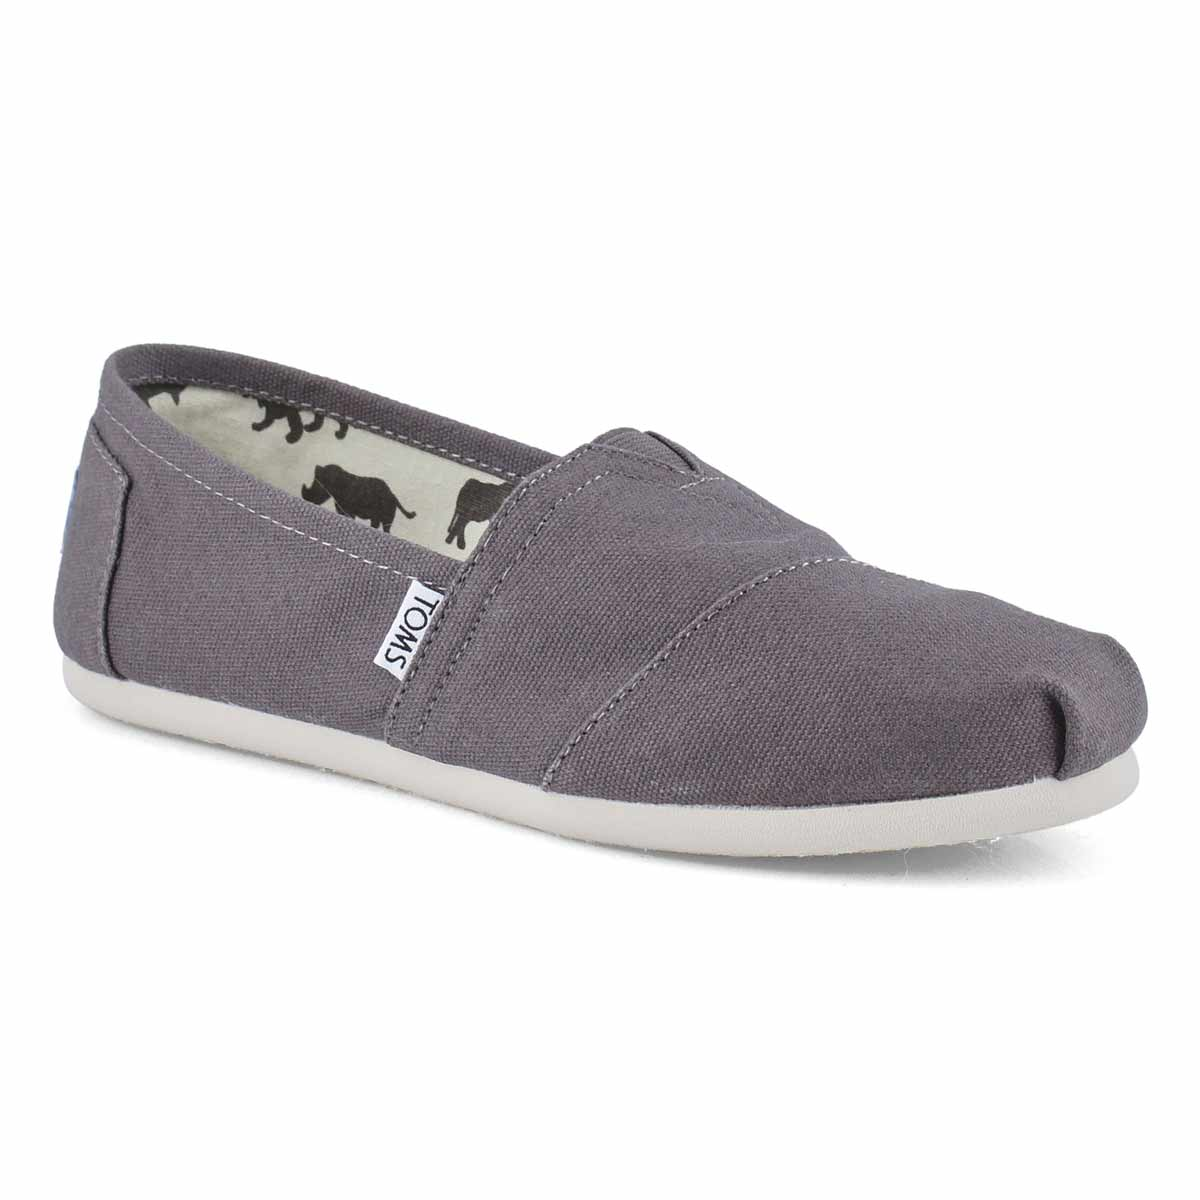 cc5769023 TOMS Women's CLASSIC ash grey canvas loafers | Softmoc.com